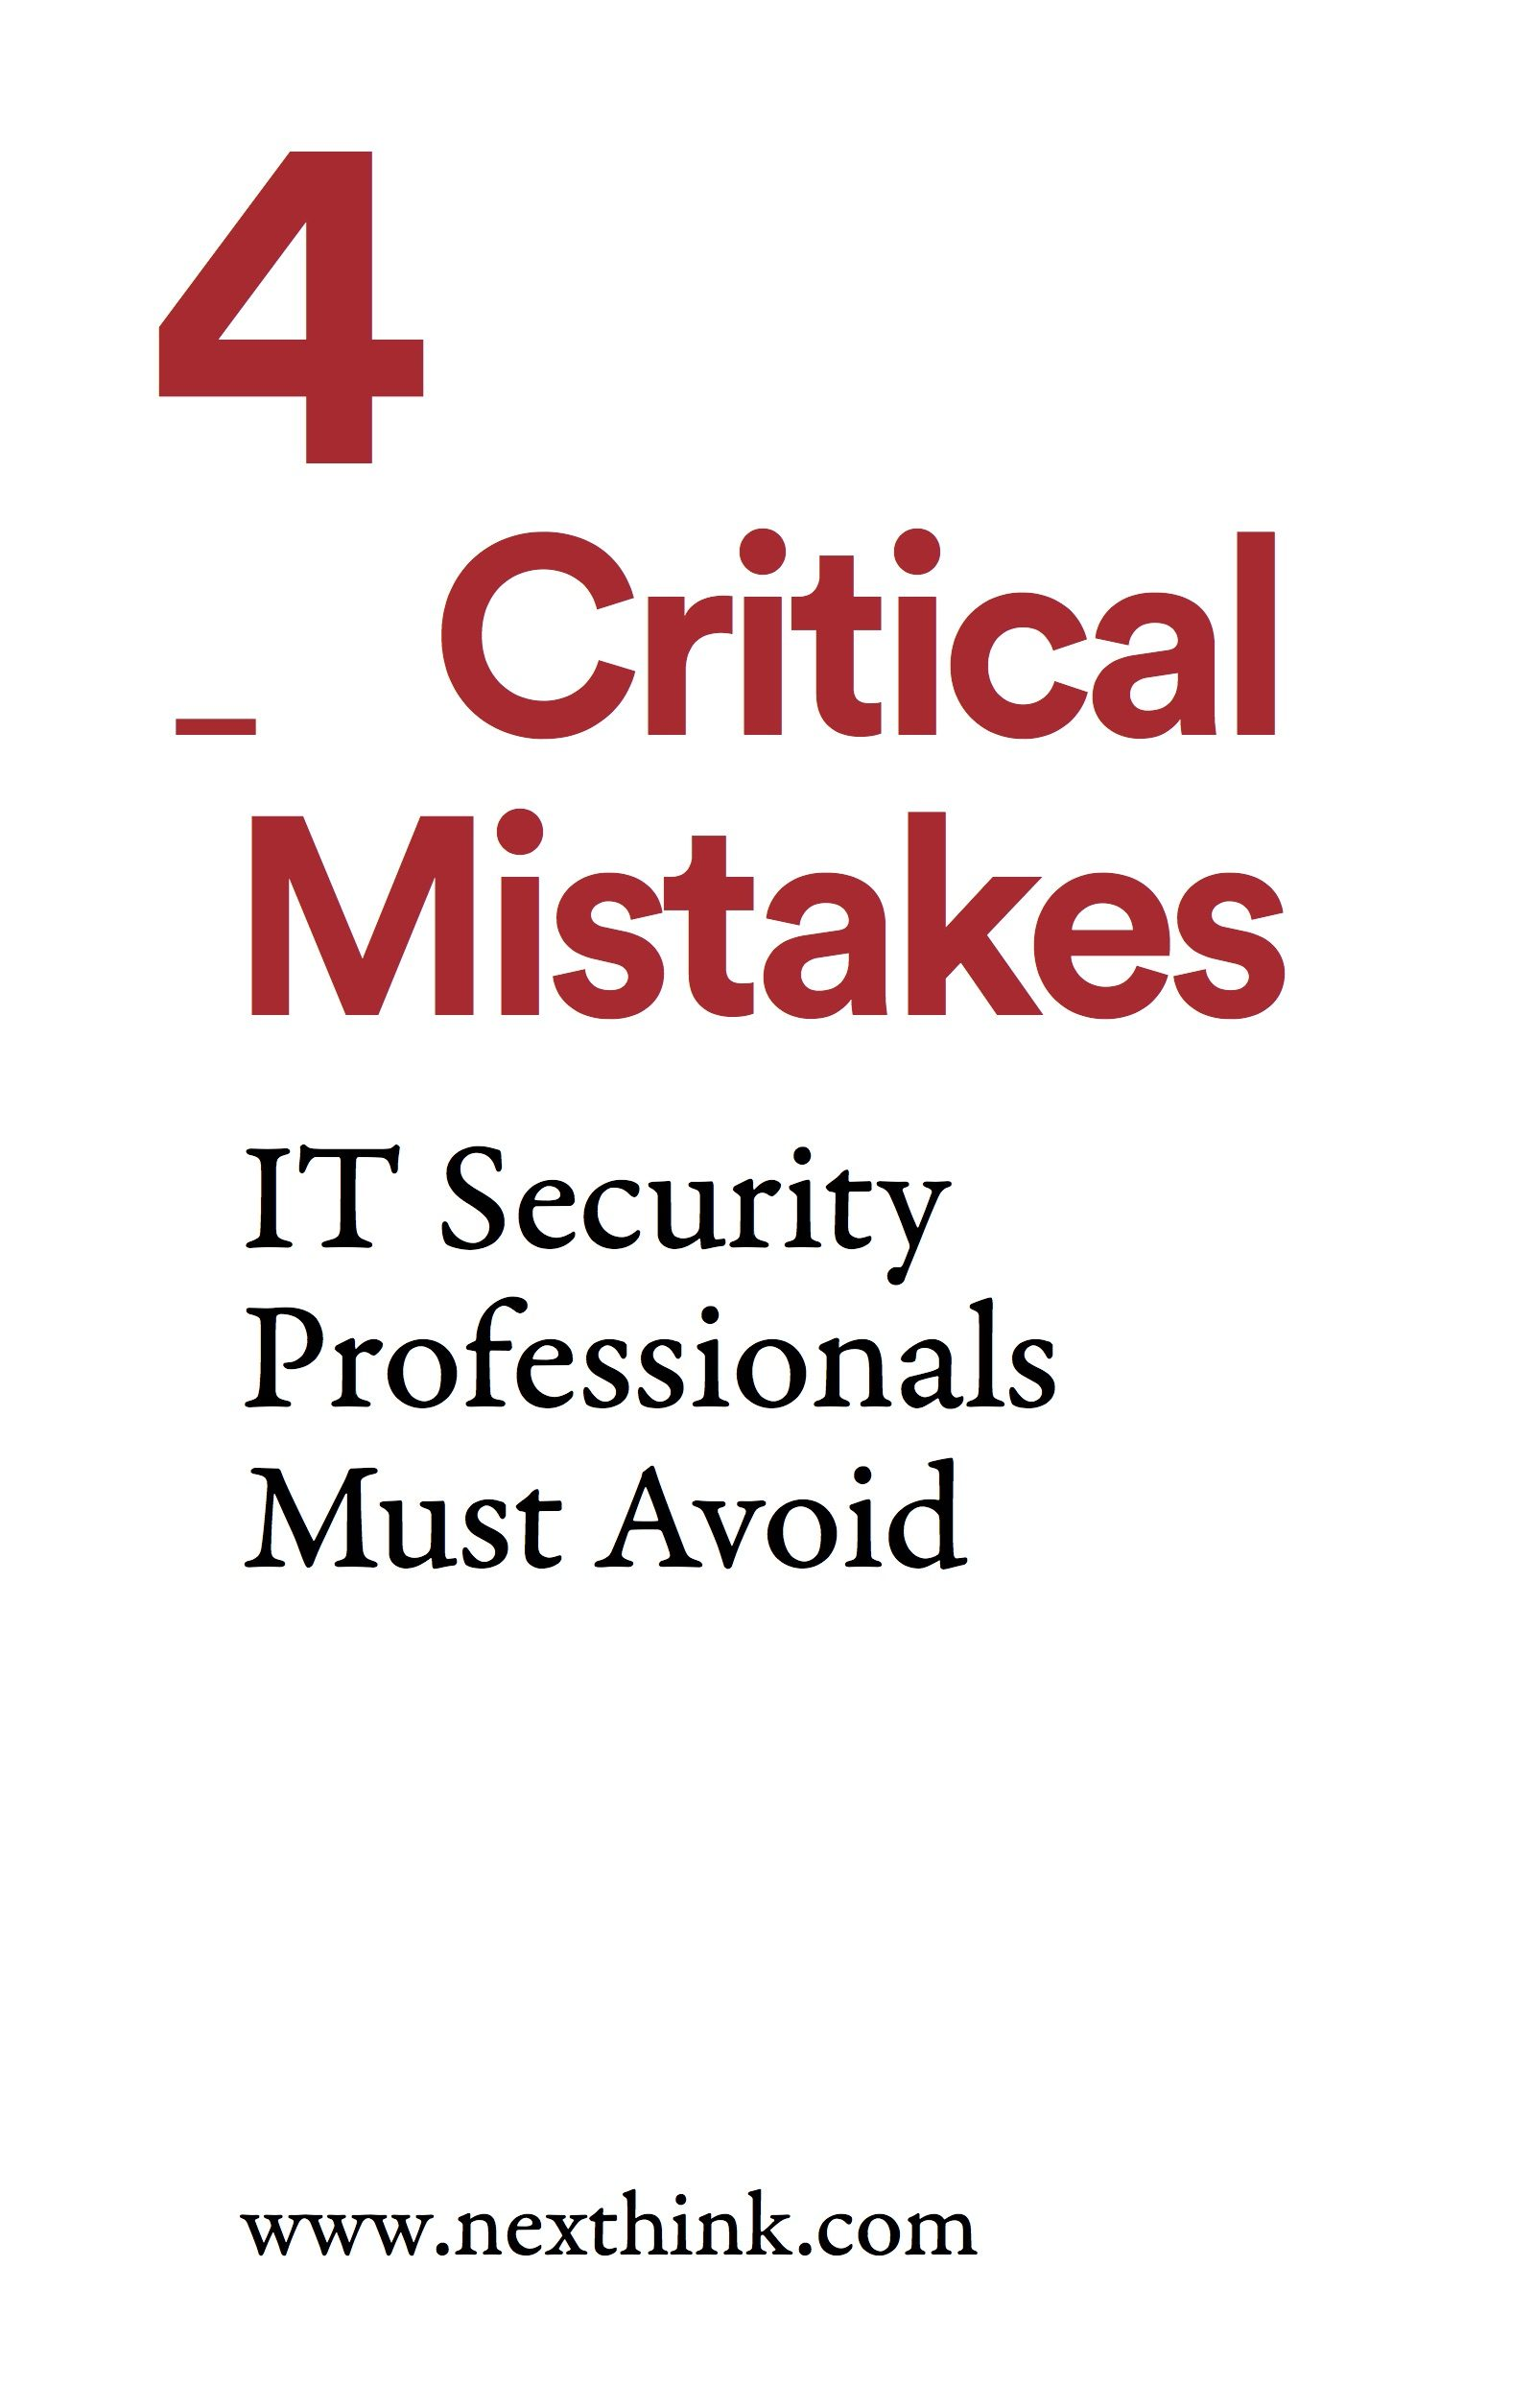 4 Critical Mistakes IT Security Professionals Must Avoid